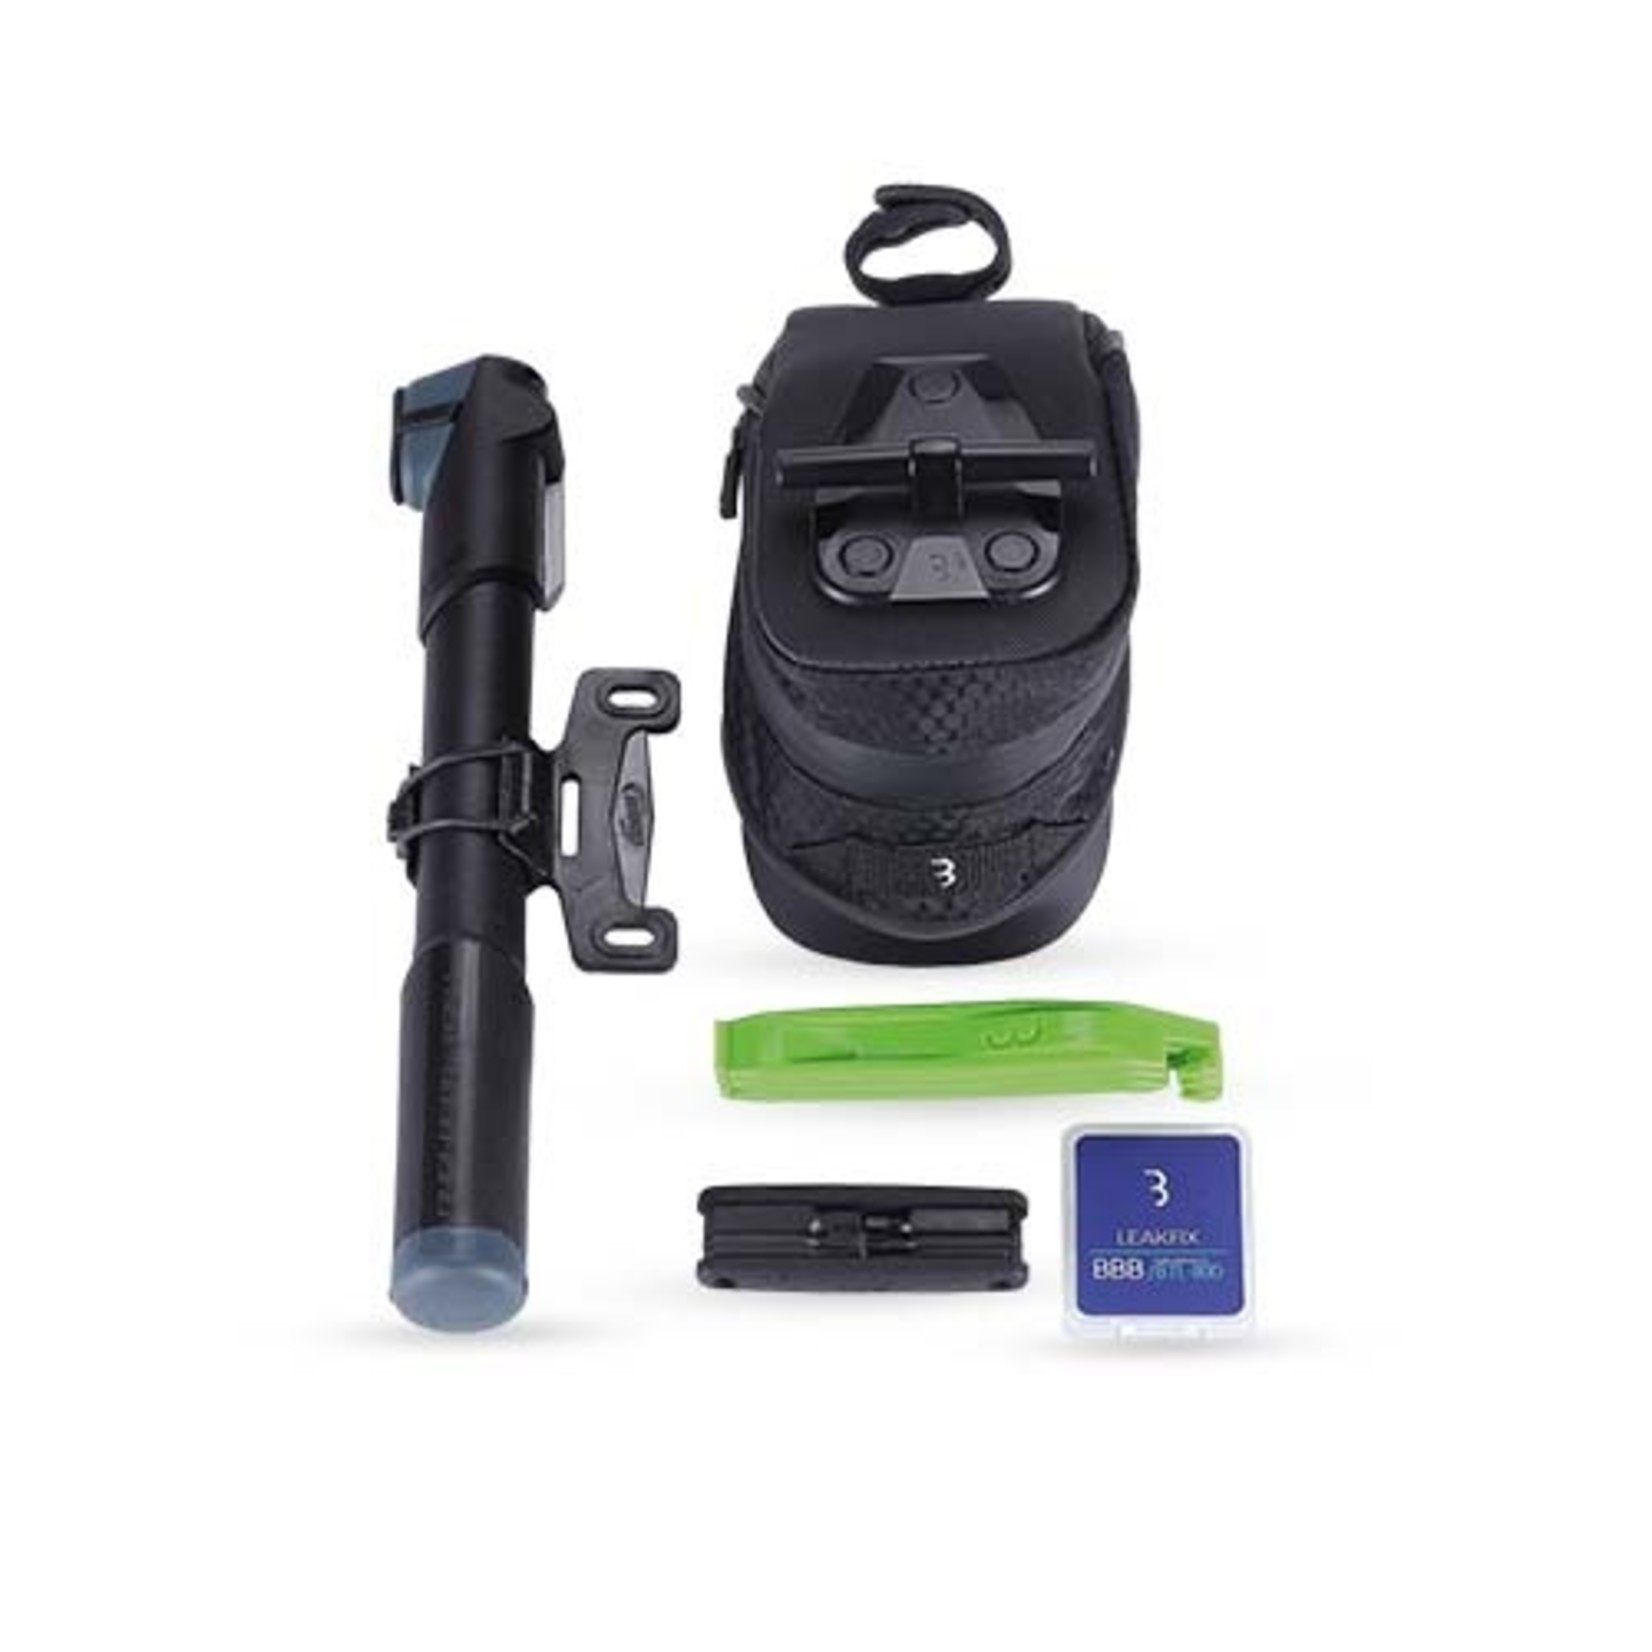 BBB BBB BSB-52 COMBIPACK M ACCESSORIES